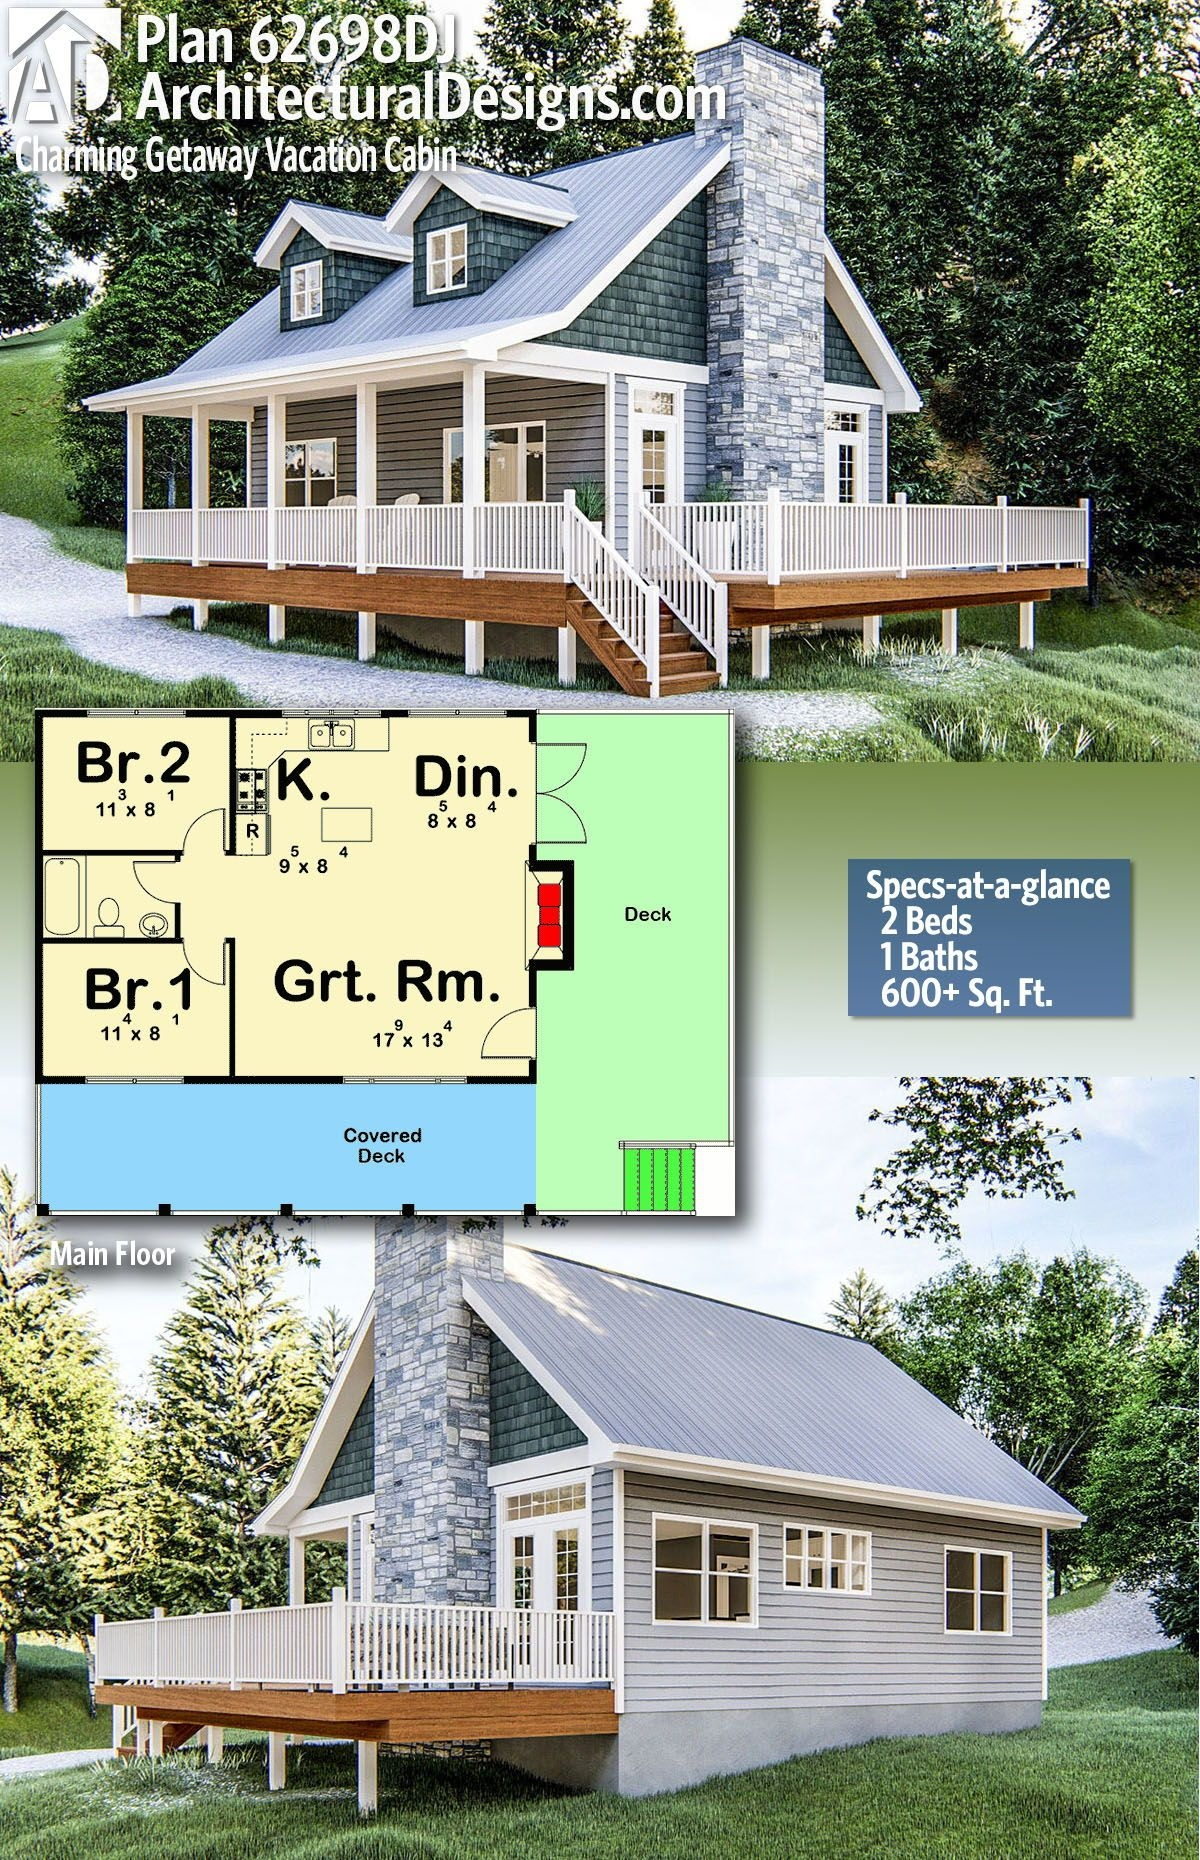 Nice-looking Small Rustic Cabin Plans On Incredible Plan Dj Charming Getaway Vacation Cabin On Small Rustic Cabin Plans